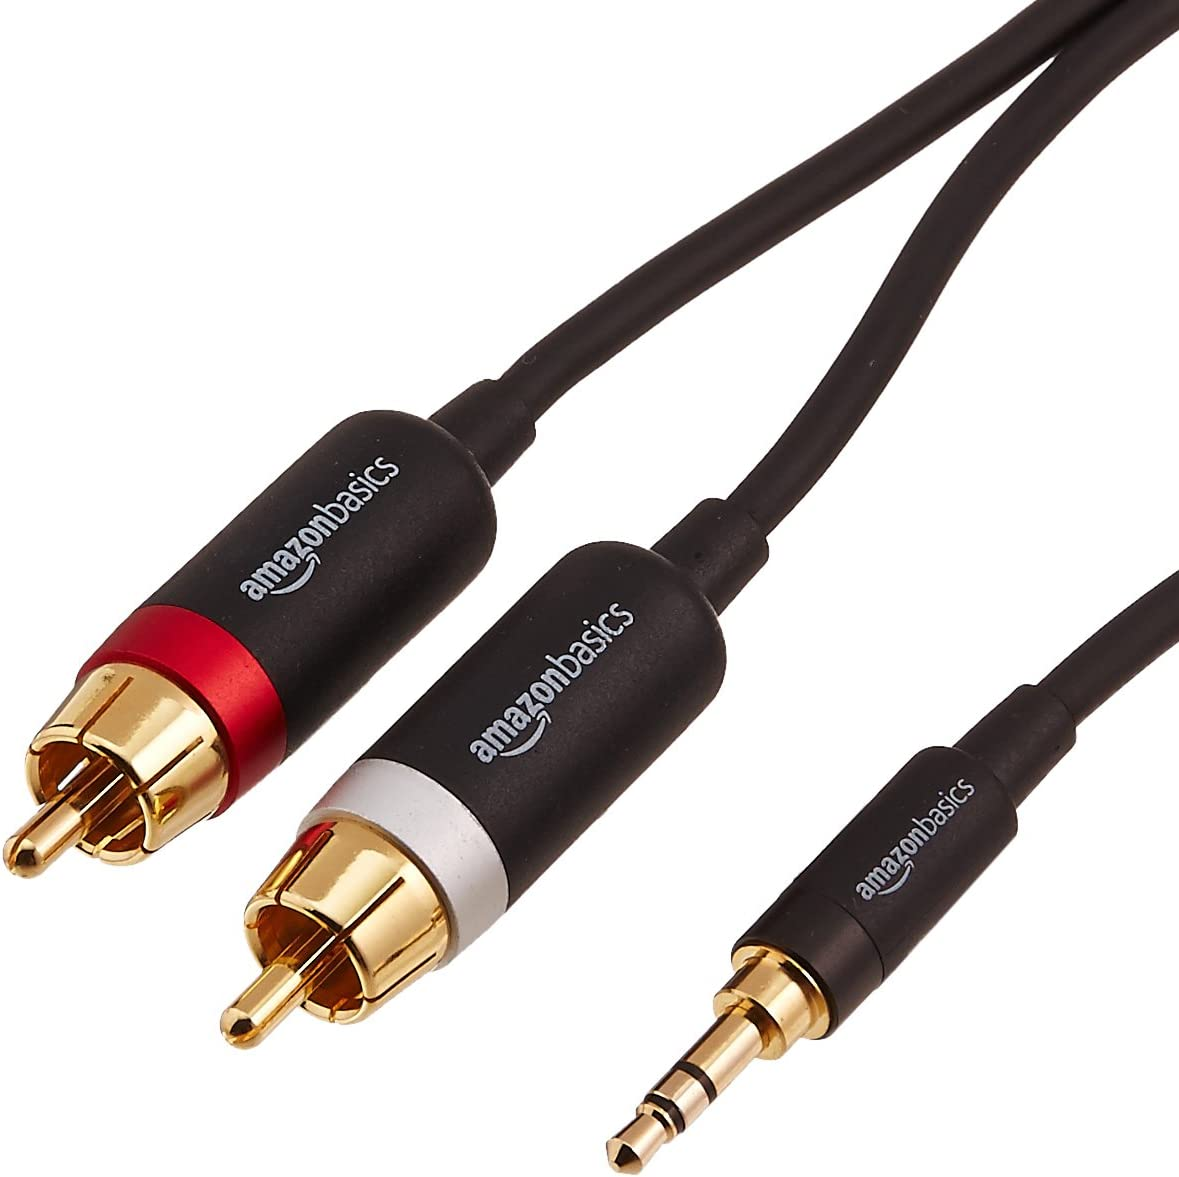 AmazonBasics 3.5mm to 2-Male RCA Adapter Cable - 15 Feet, 5-Pack